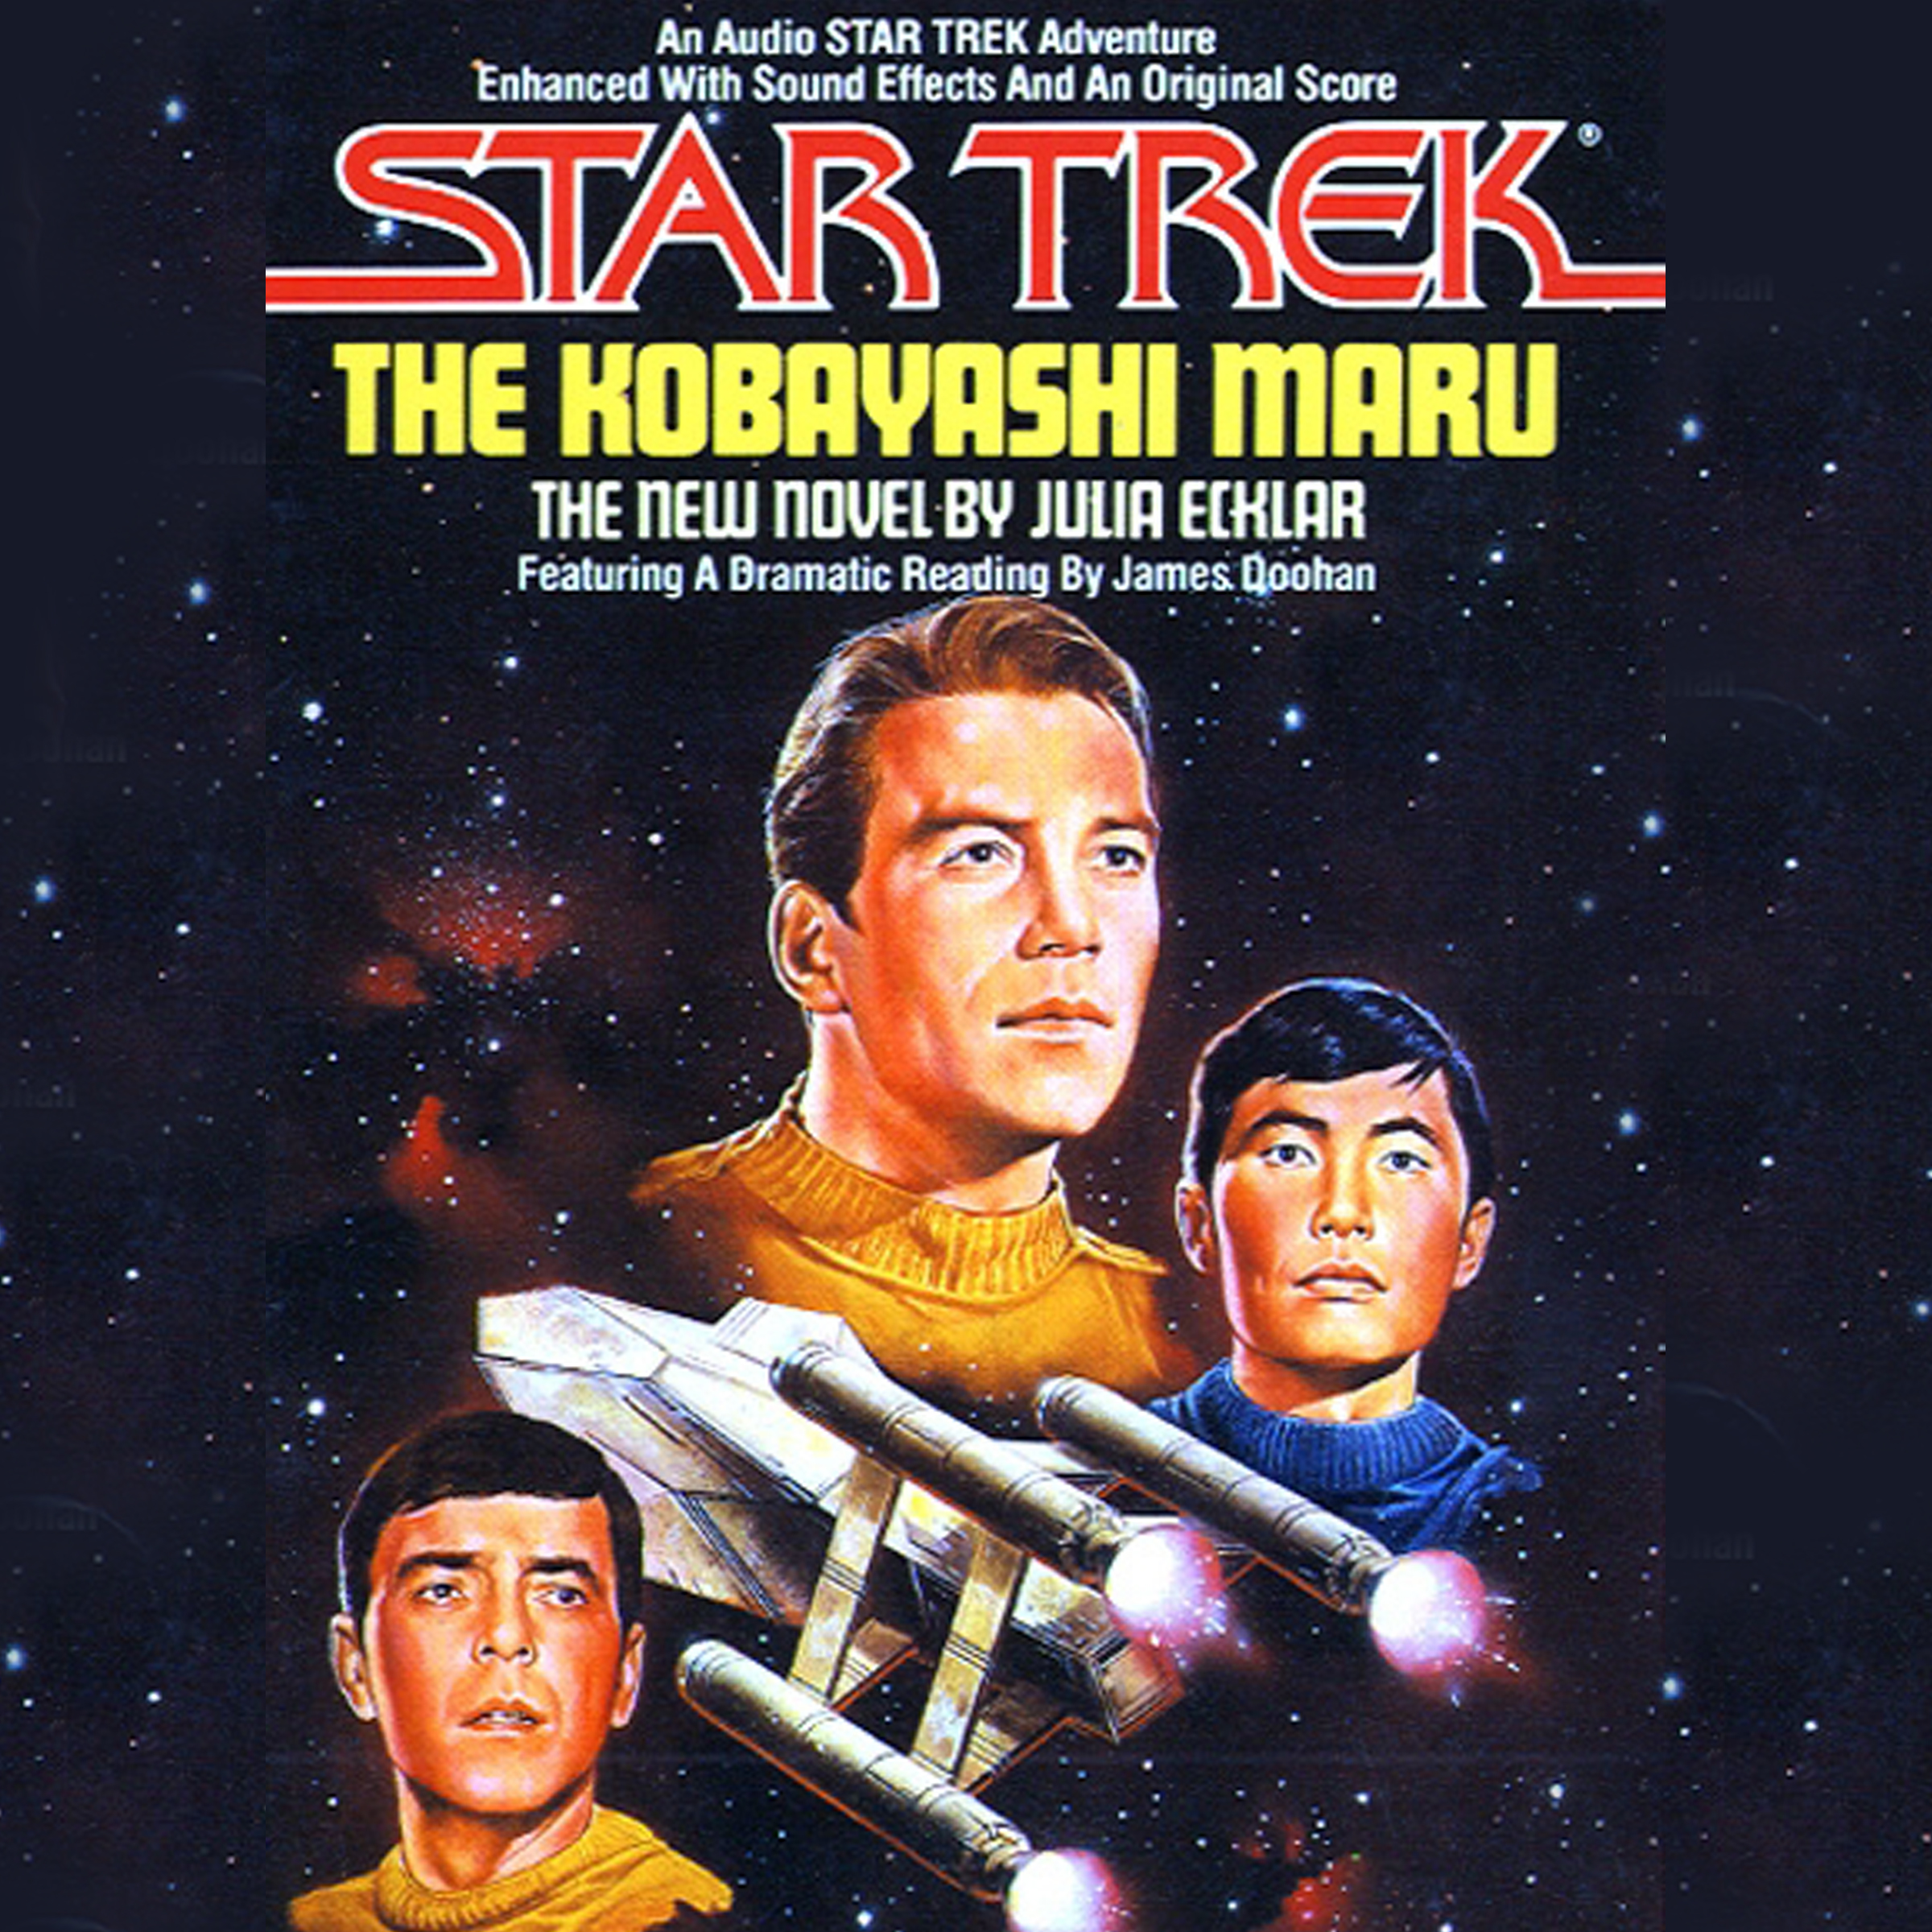 Star trek kabayashi maru 9780743546751 hr